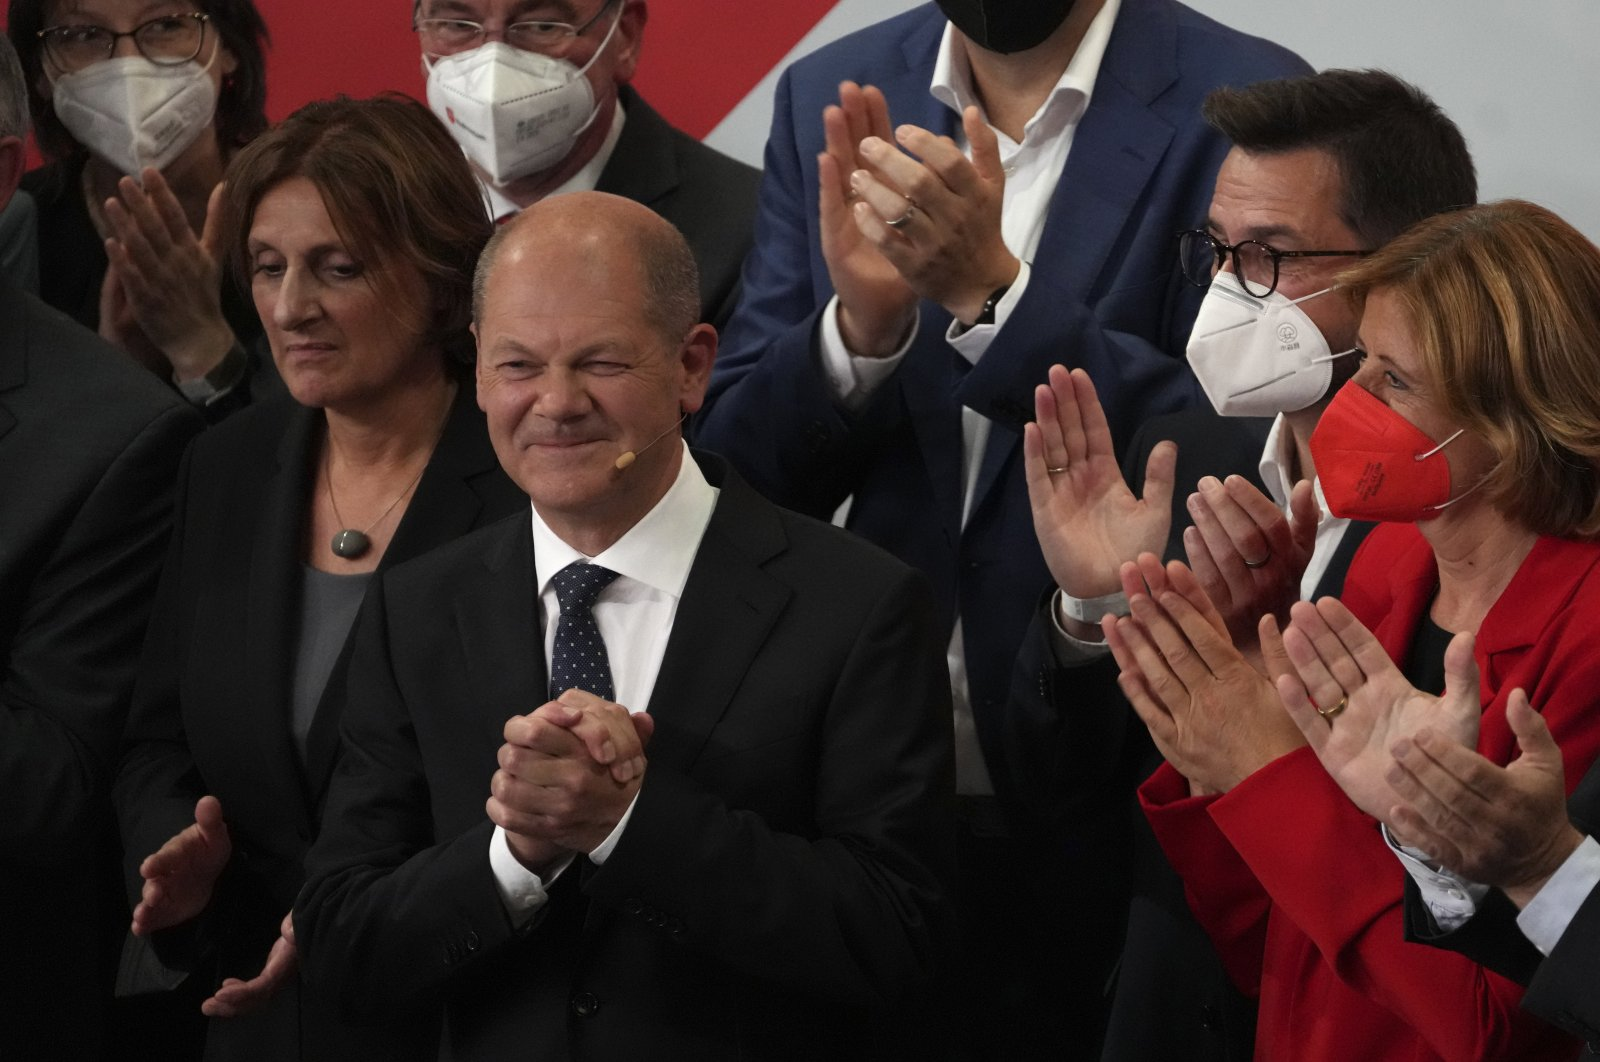 Olaf Scholz, finance minister and Social Democratic Party (SDP) candidate for chancellor, after addressing his supporters after the German parliament election at the SPD headquarters in Berlin, Germany, Sept. 26, 2021. (AP Photo)